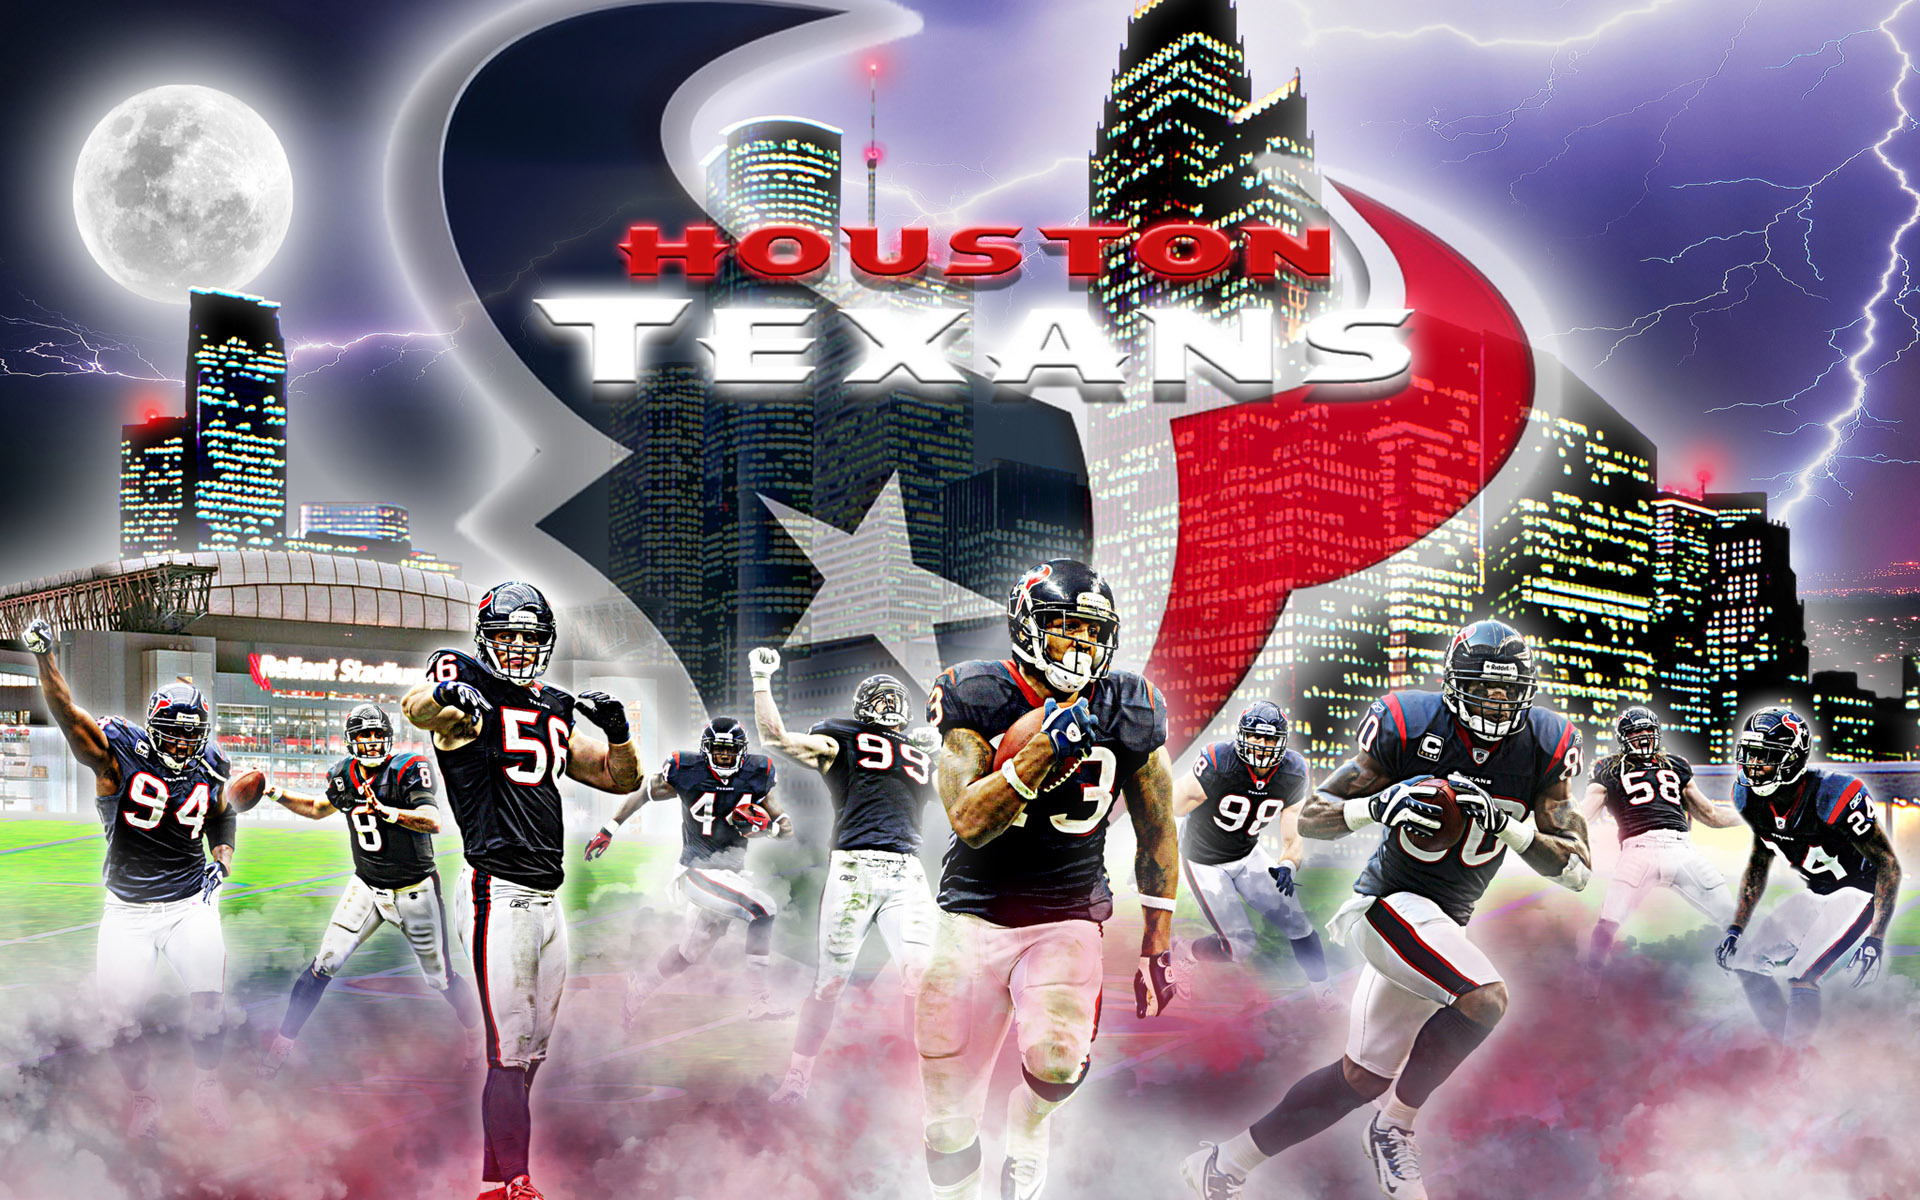 Houston Texans Wallpaper 10210 1920x1200